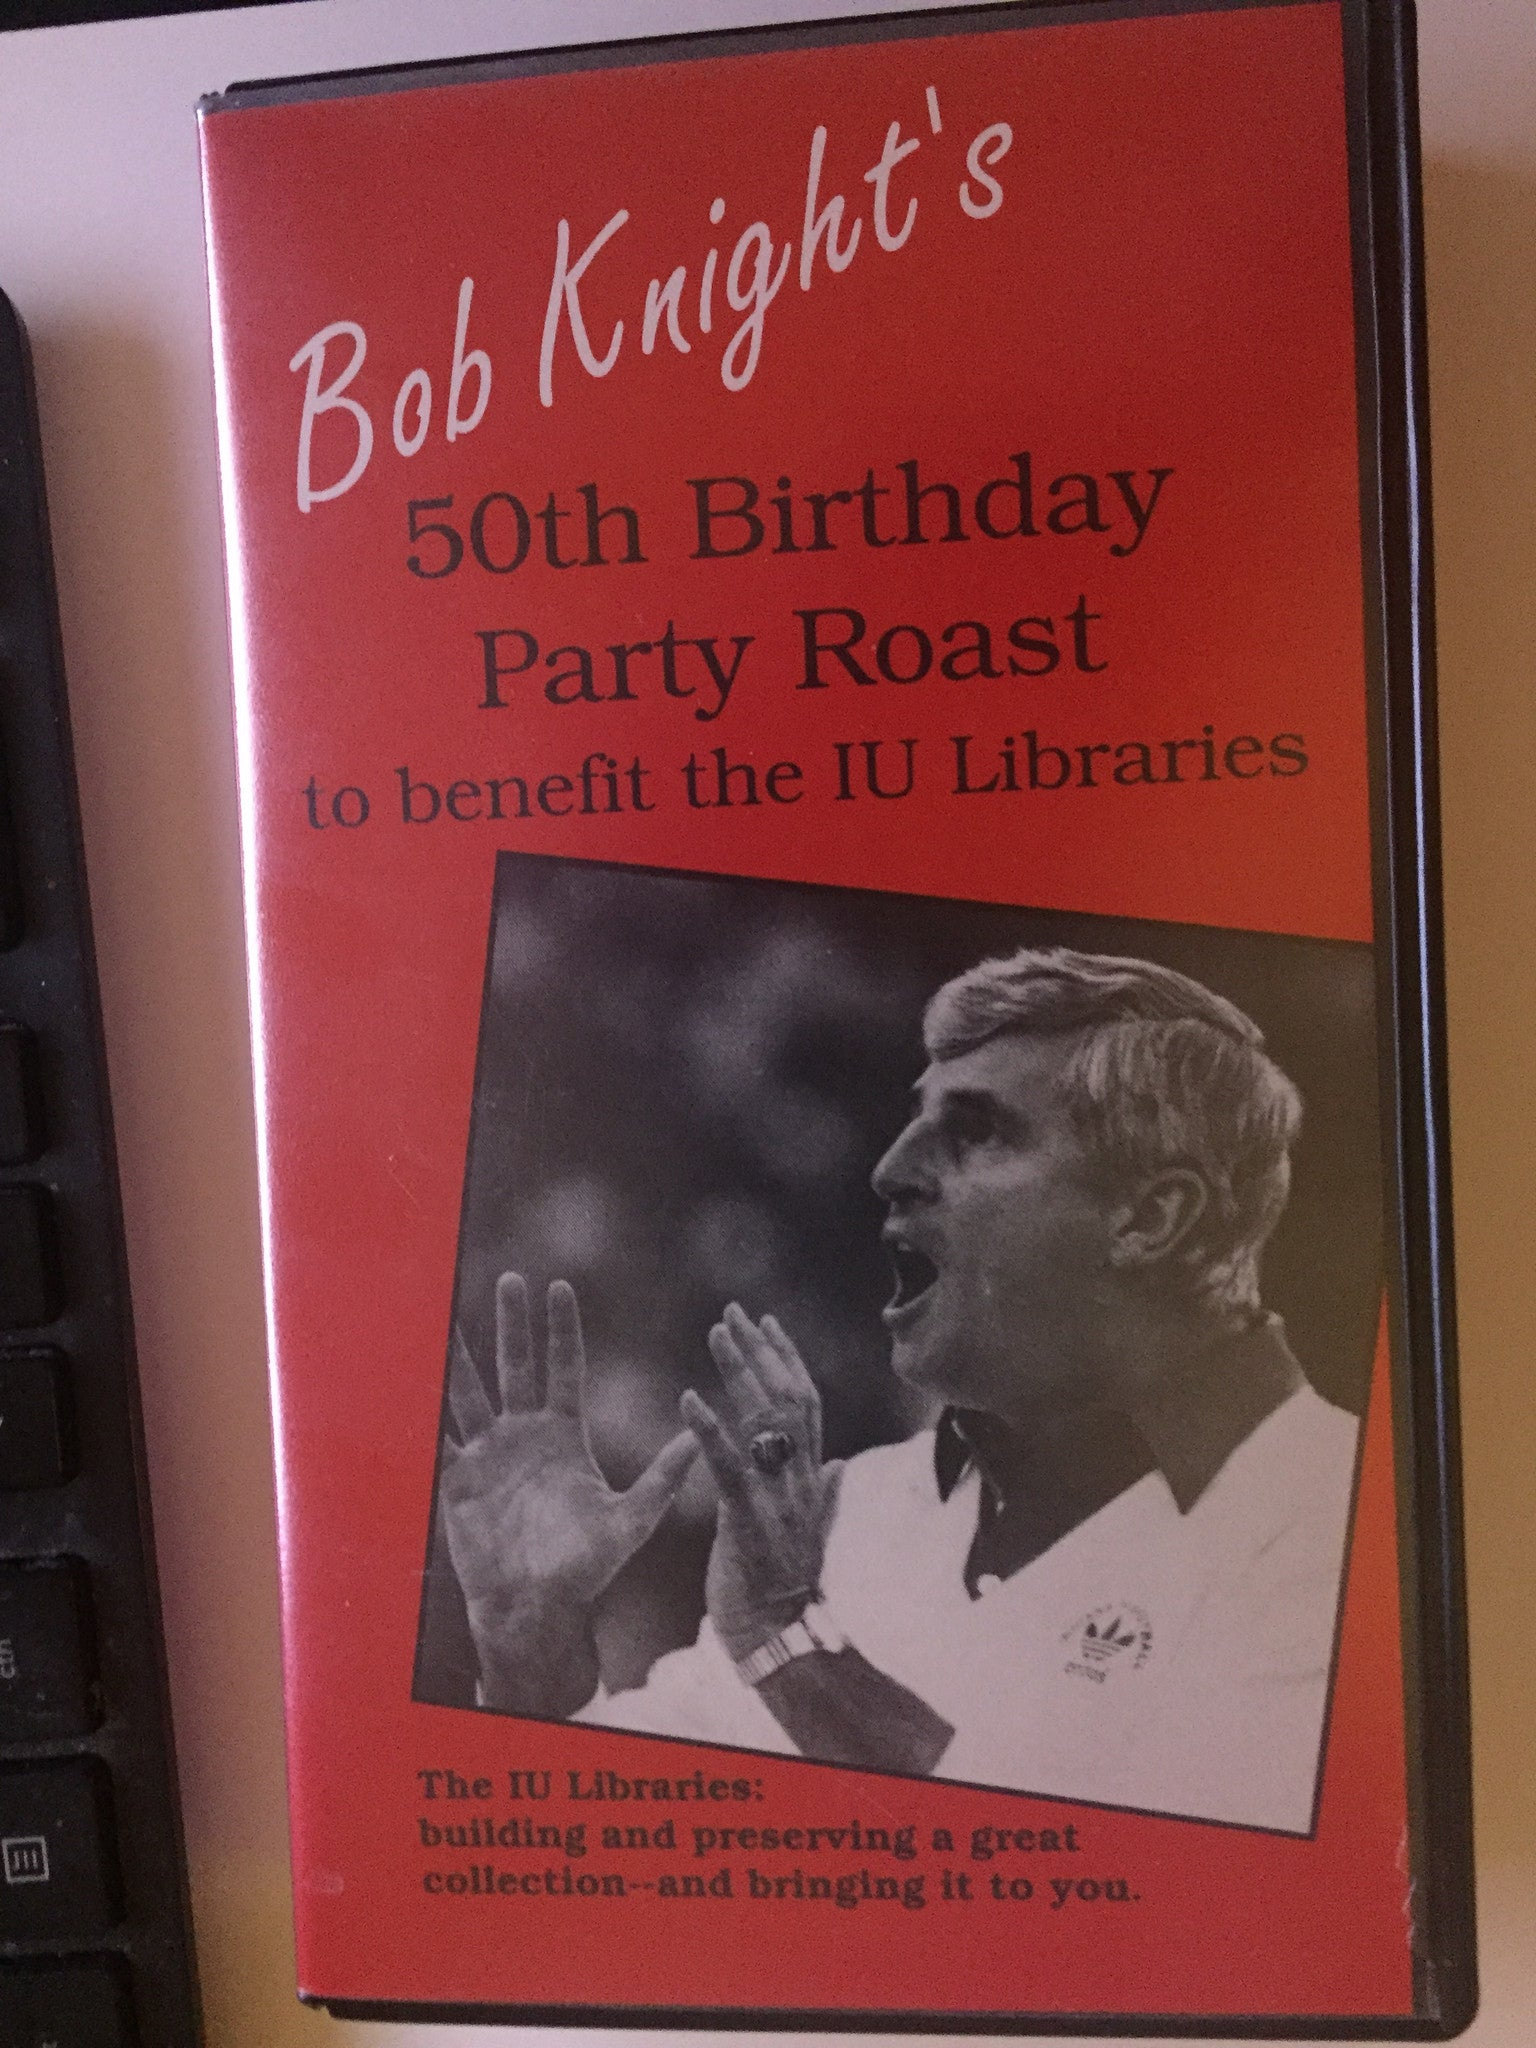 Bob Knight's 50th Birthday Party Roast VHS Video - Vintage Indy Sports